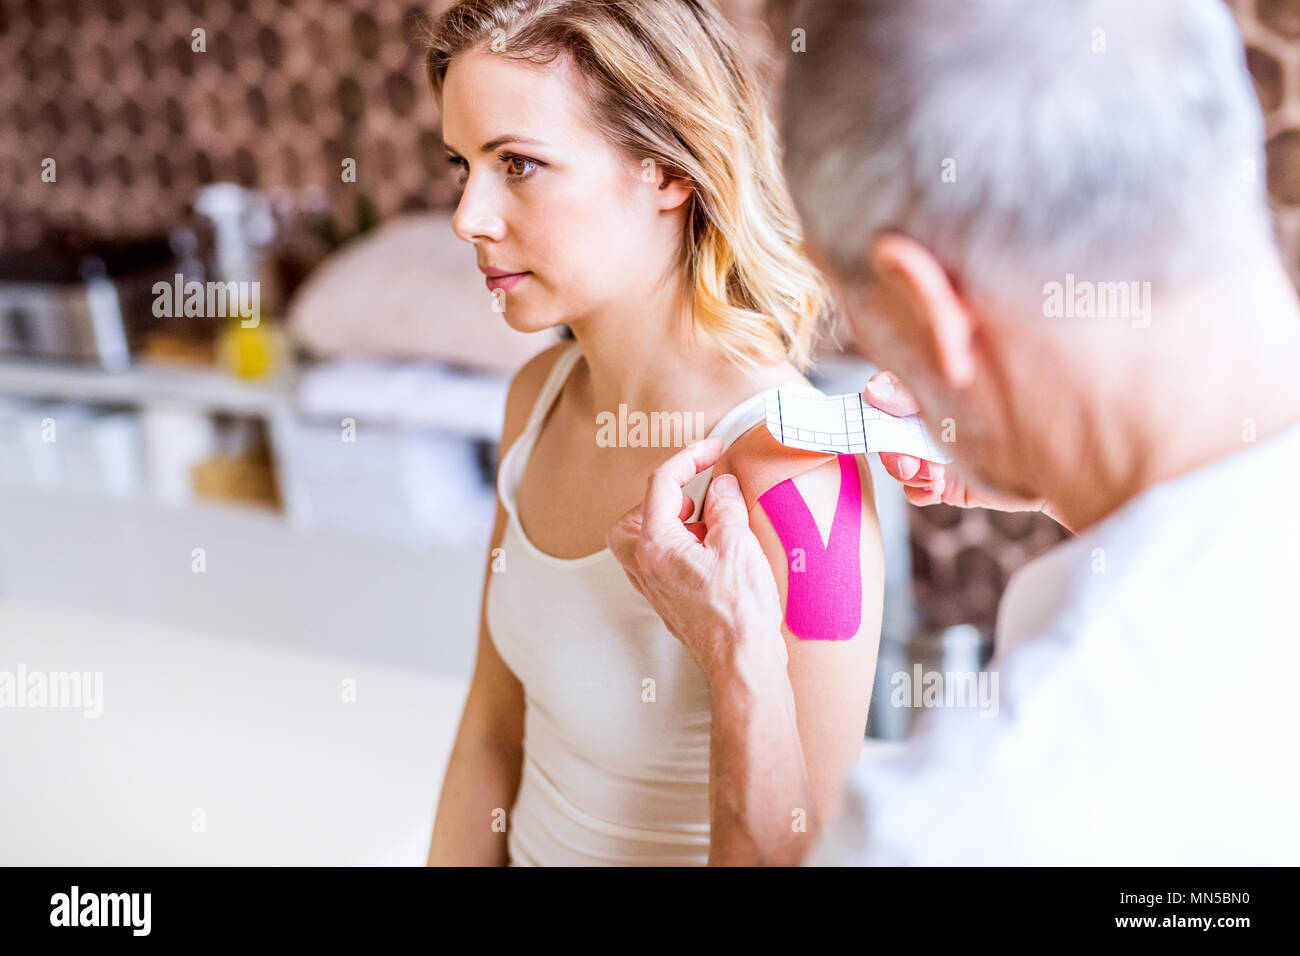 An unrecognizable male physiotherapist applying tape on a young female patient. Close up. - Stock Image